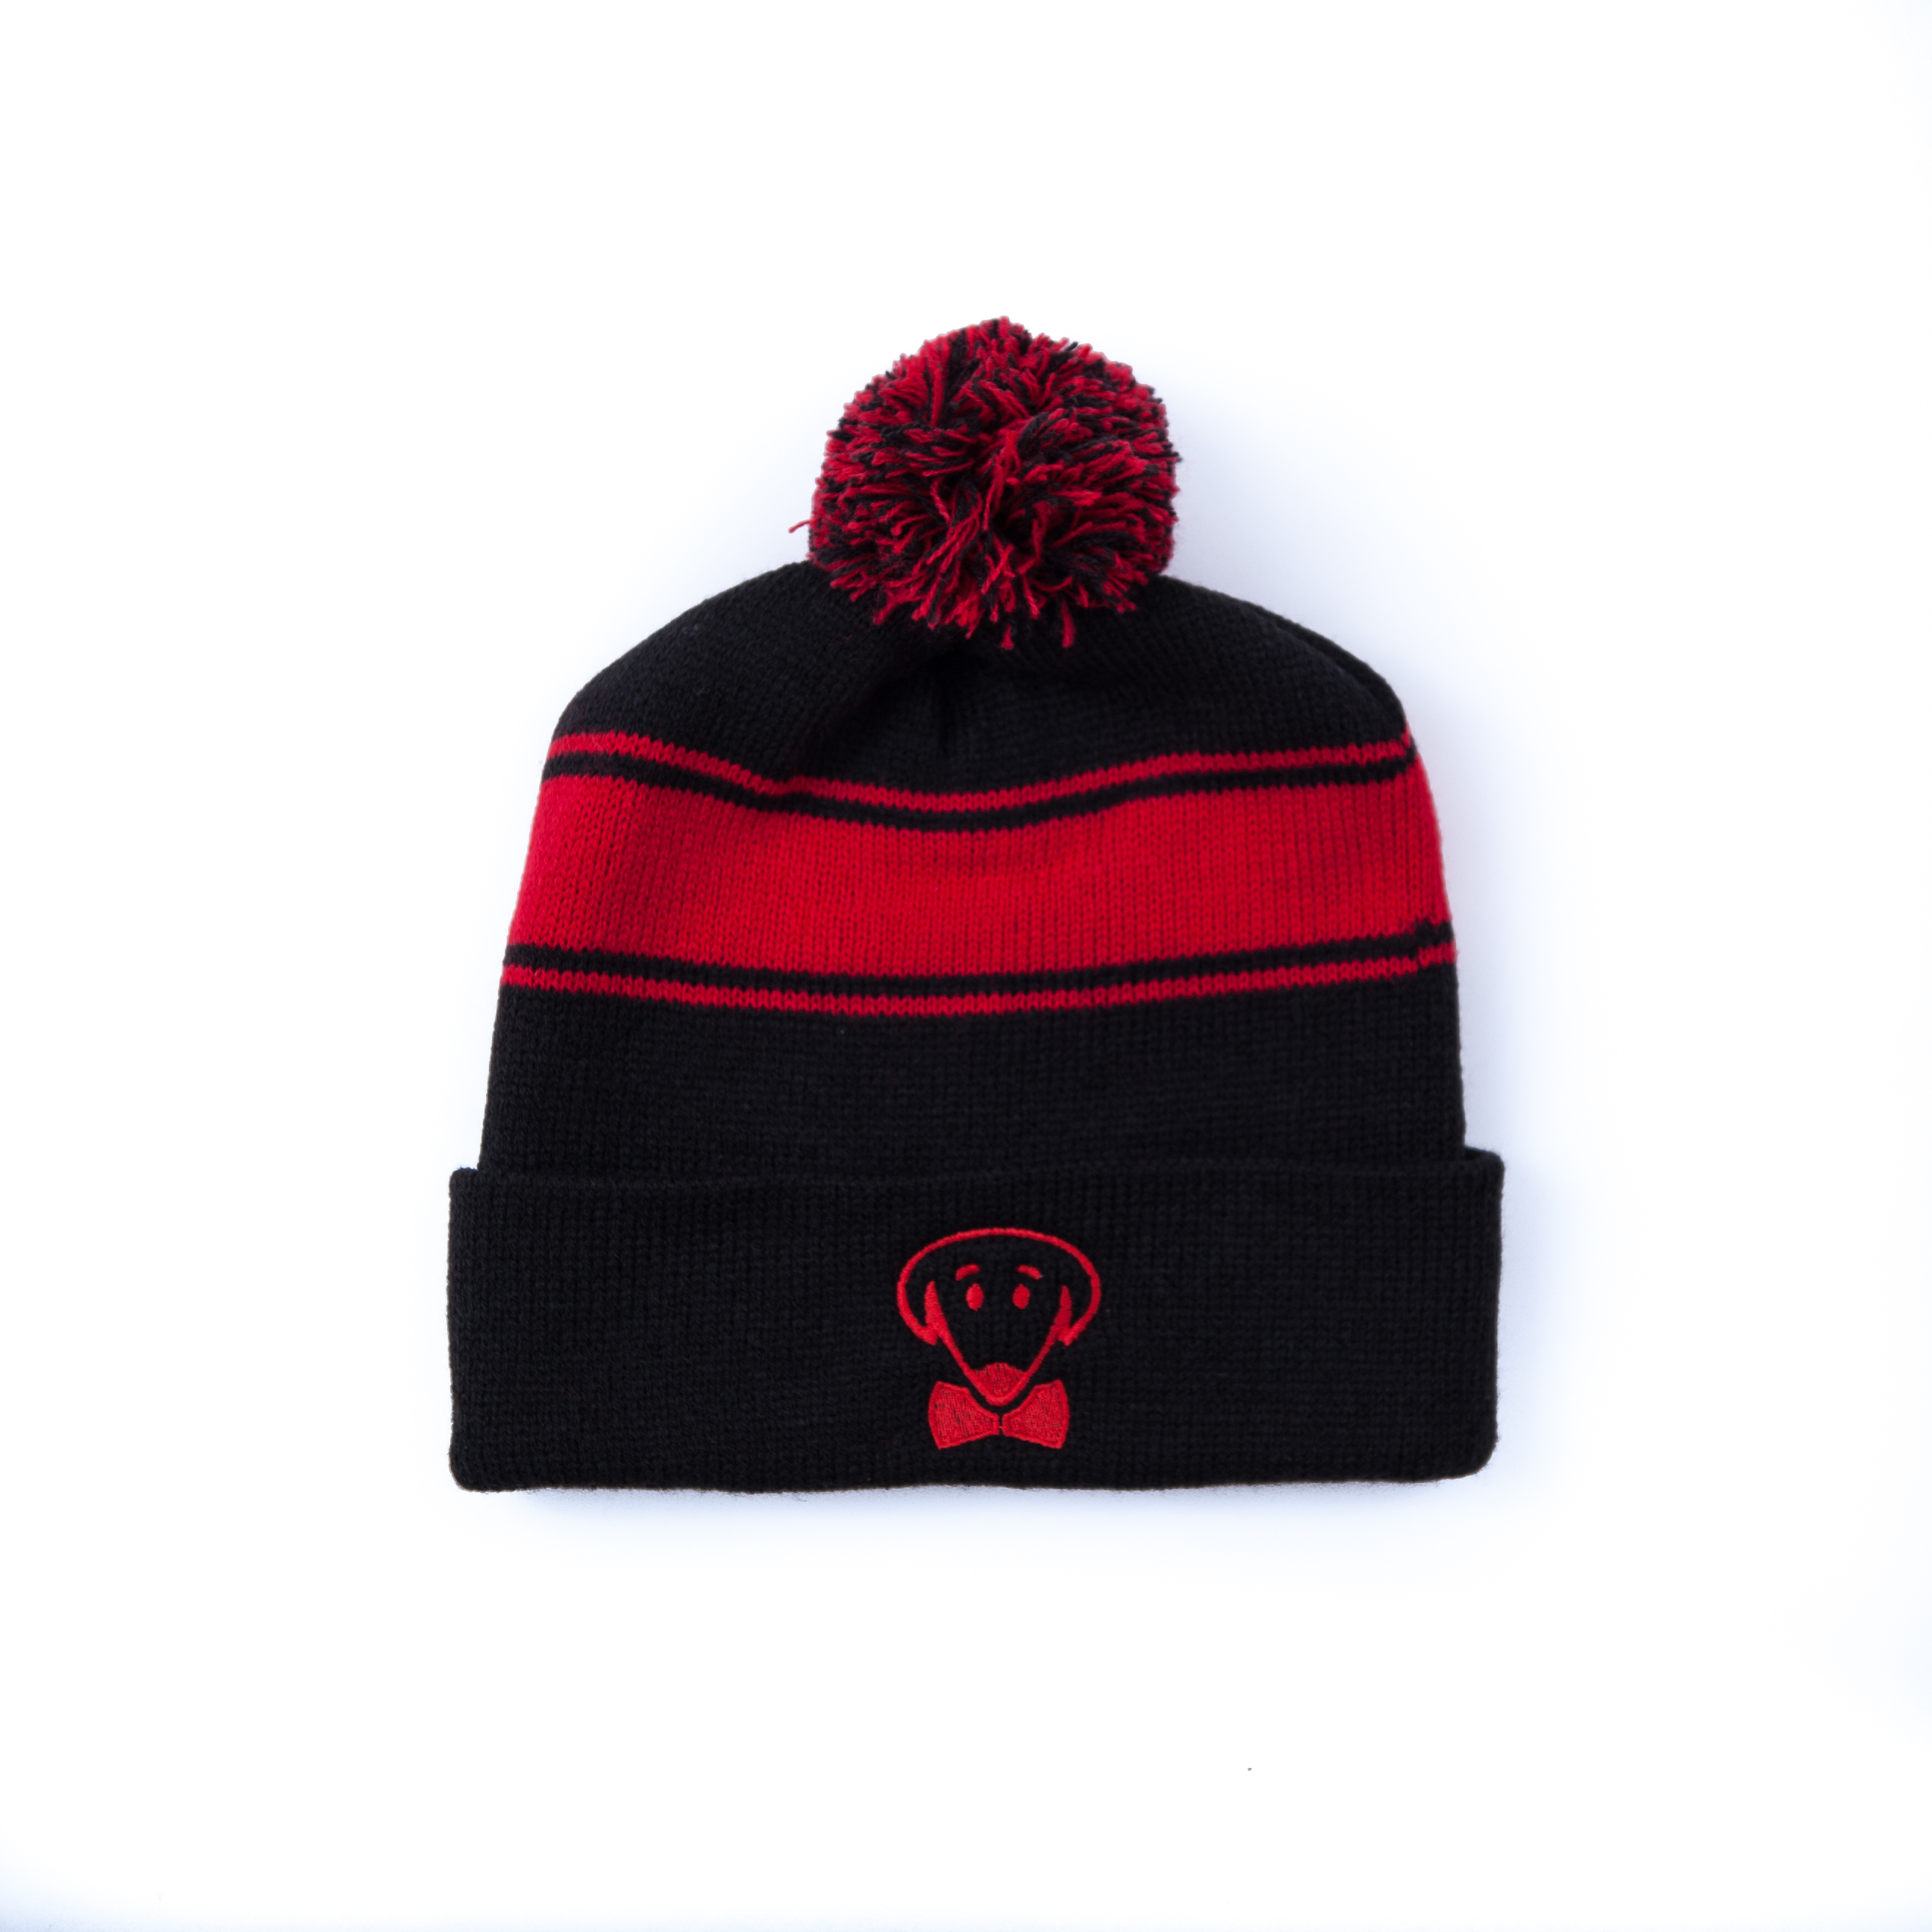 Black and red winter knit hat-Stay Warm, Look Cool